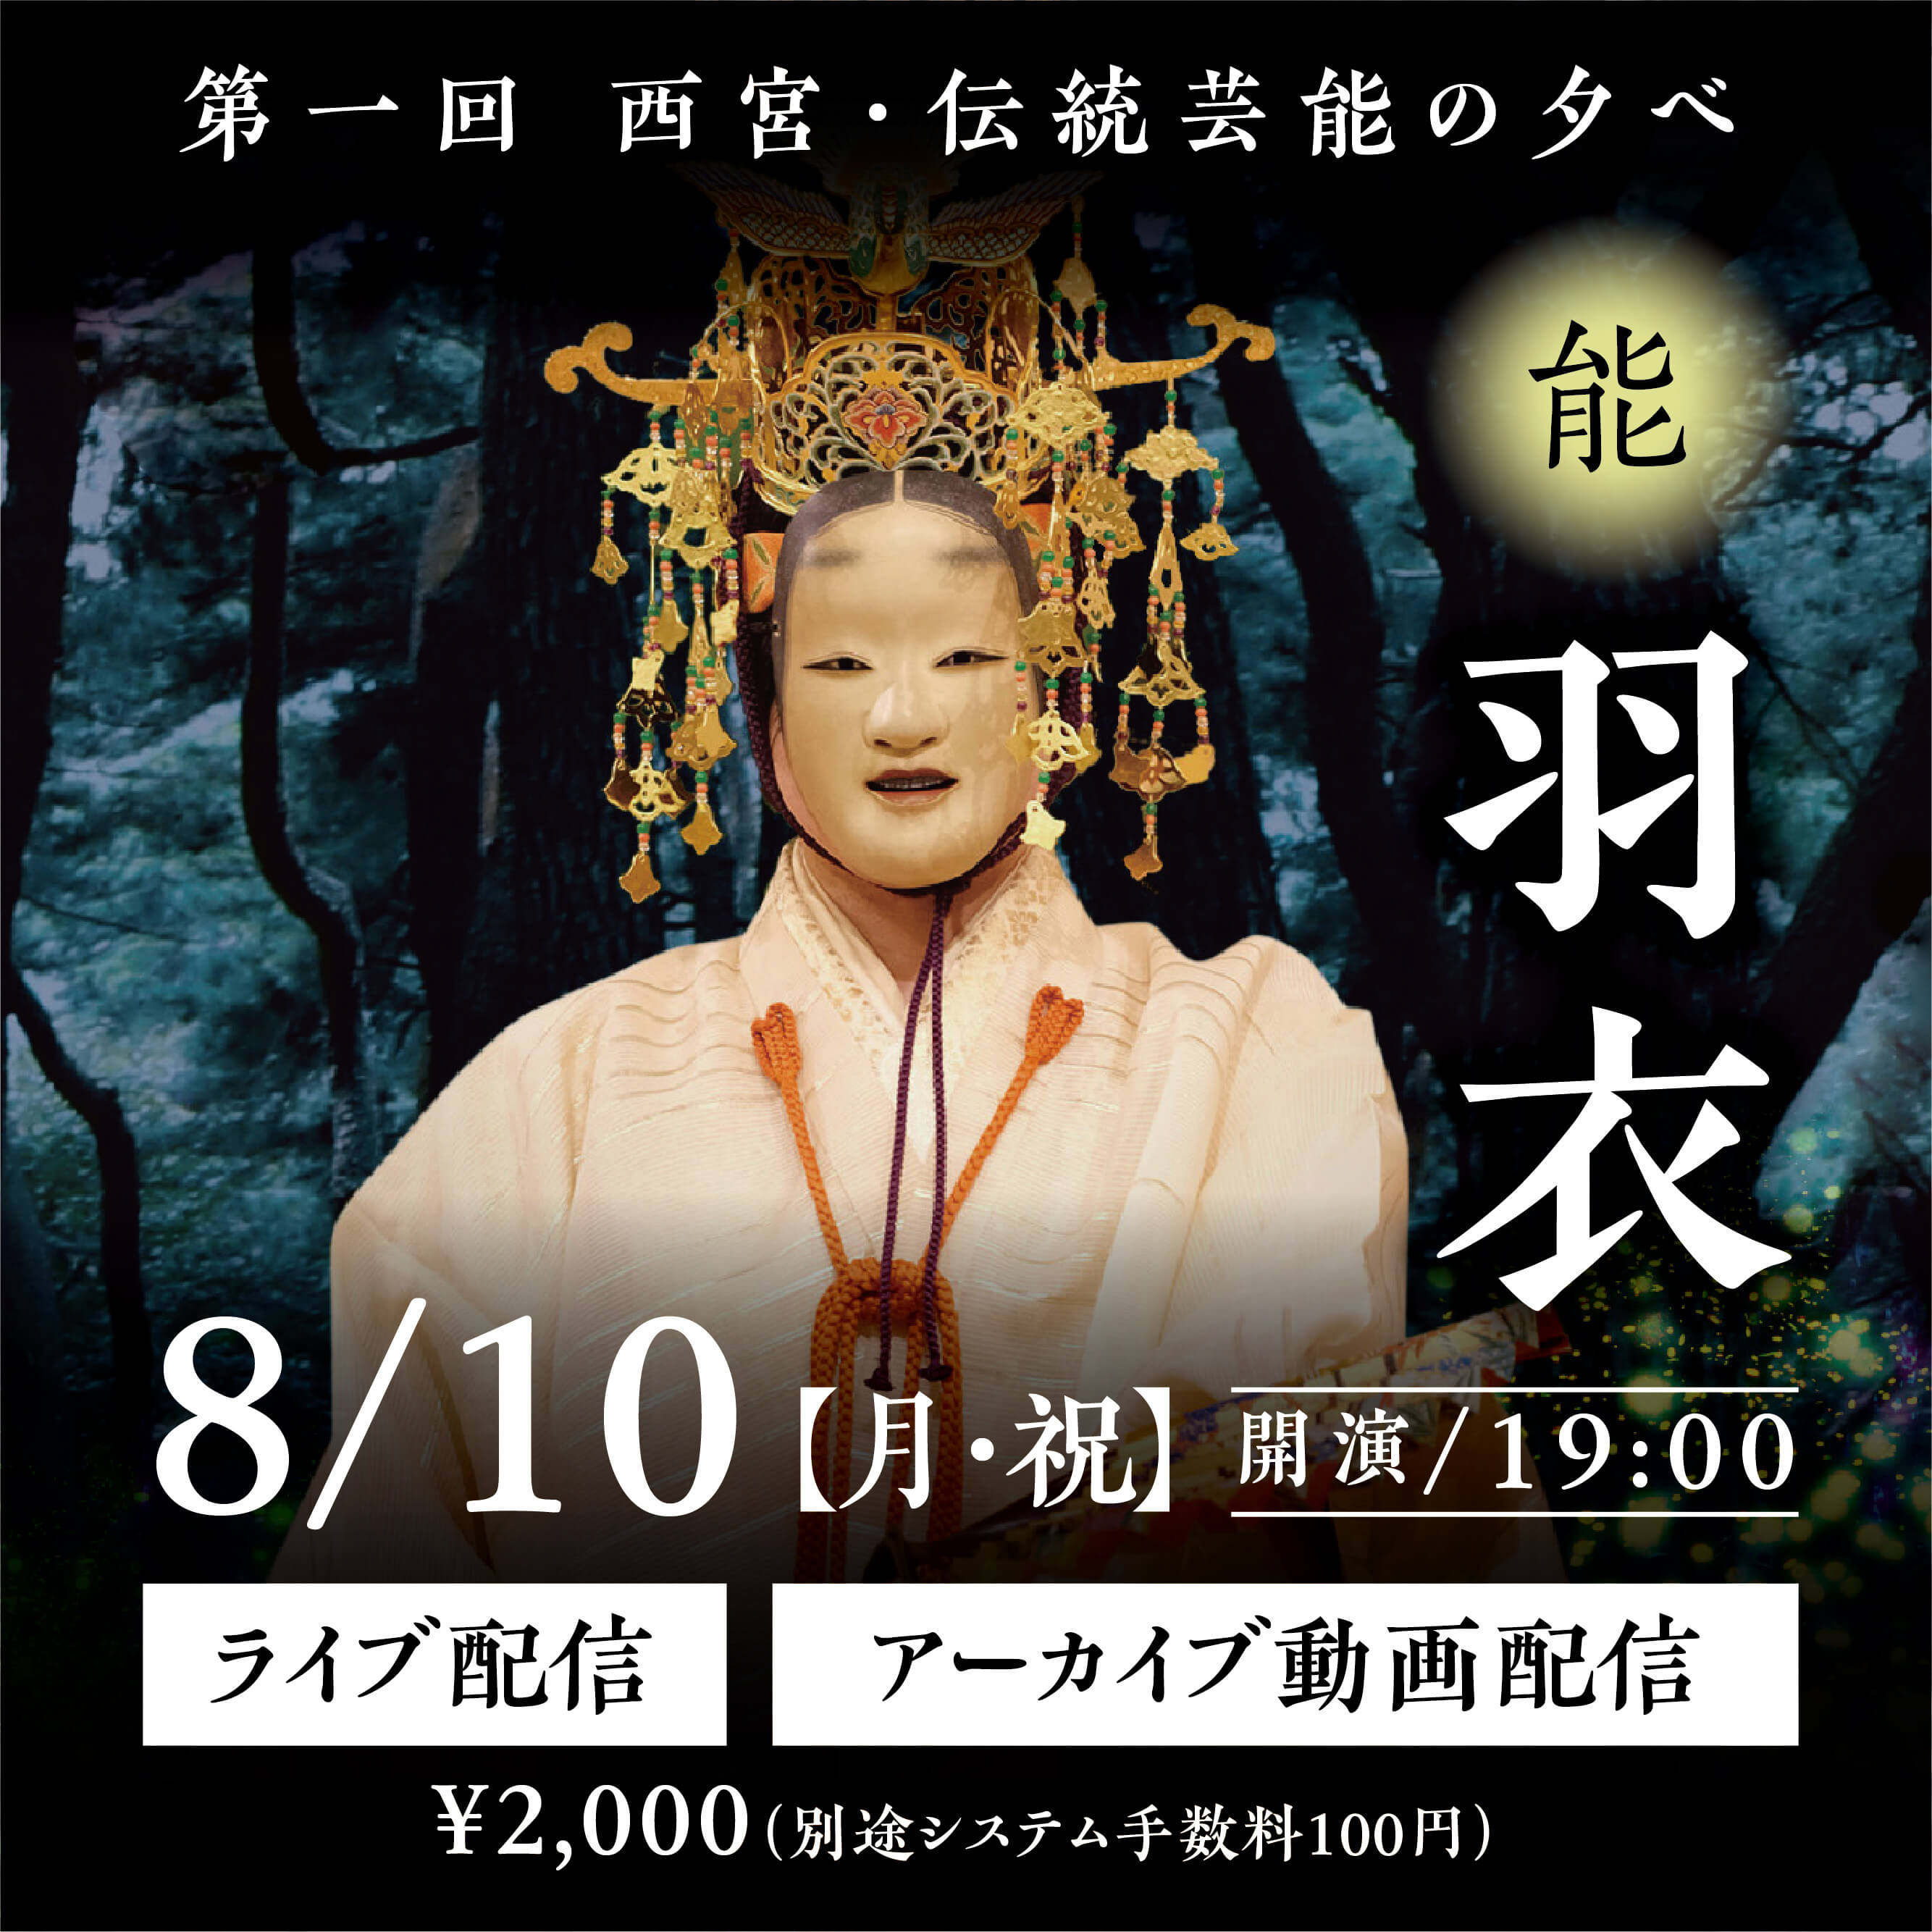 noh - traditional japanese ritual theatre - at noh.kyogen - 2020.08.10 -